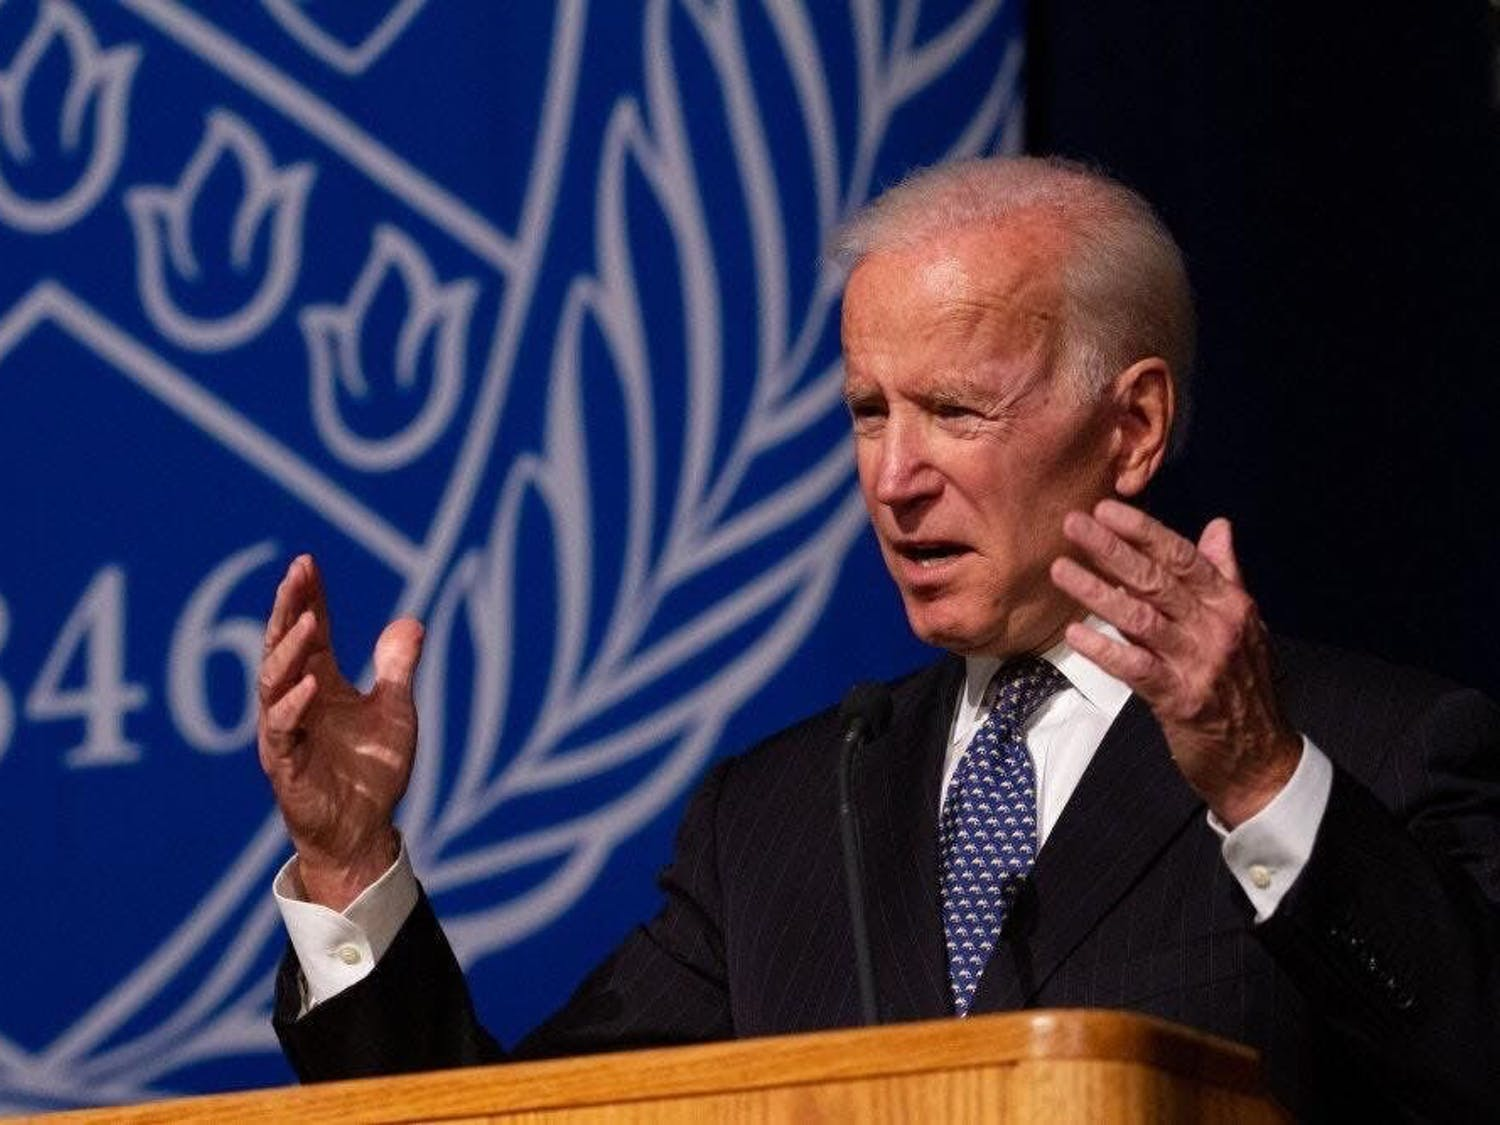 2020 presidential candidate Joe Biden at the distinguished speakers series in 2018.